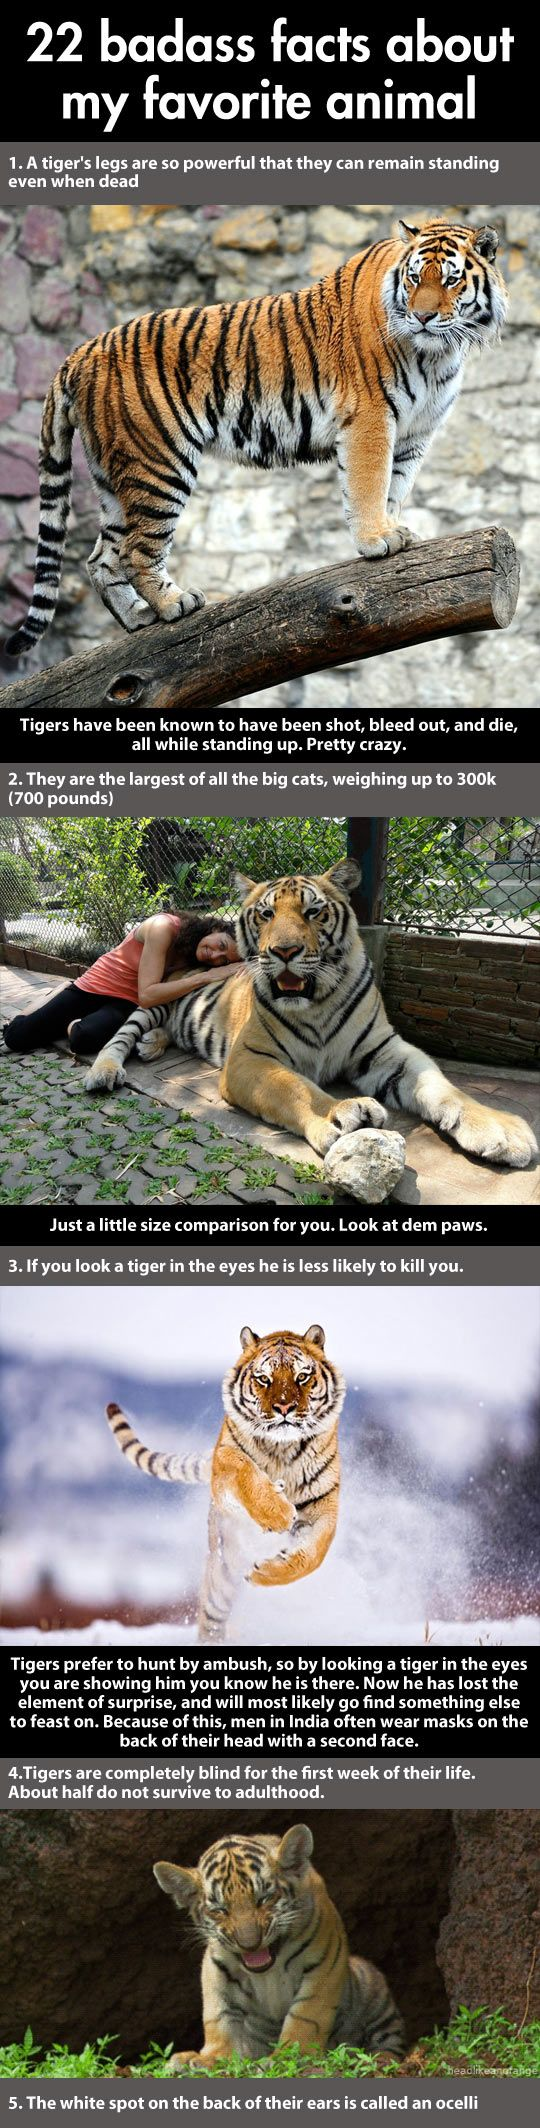 Badass facts about a tiger…1